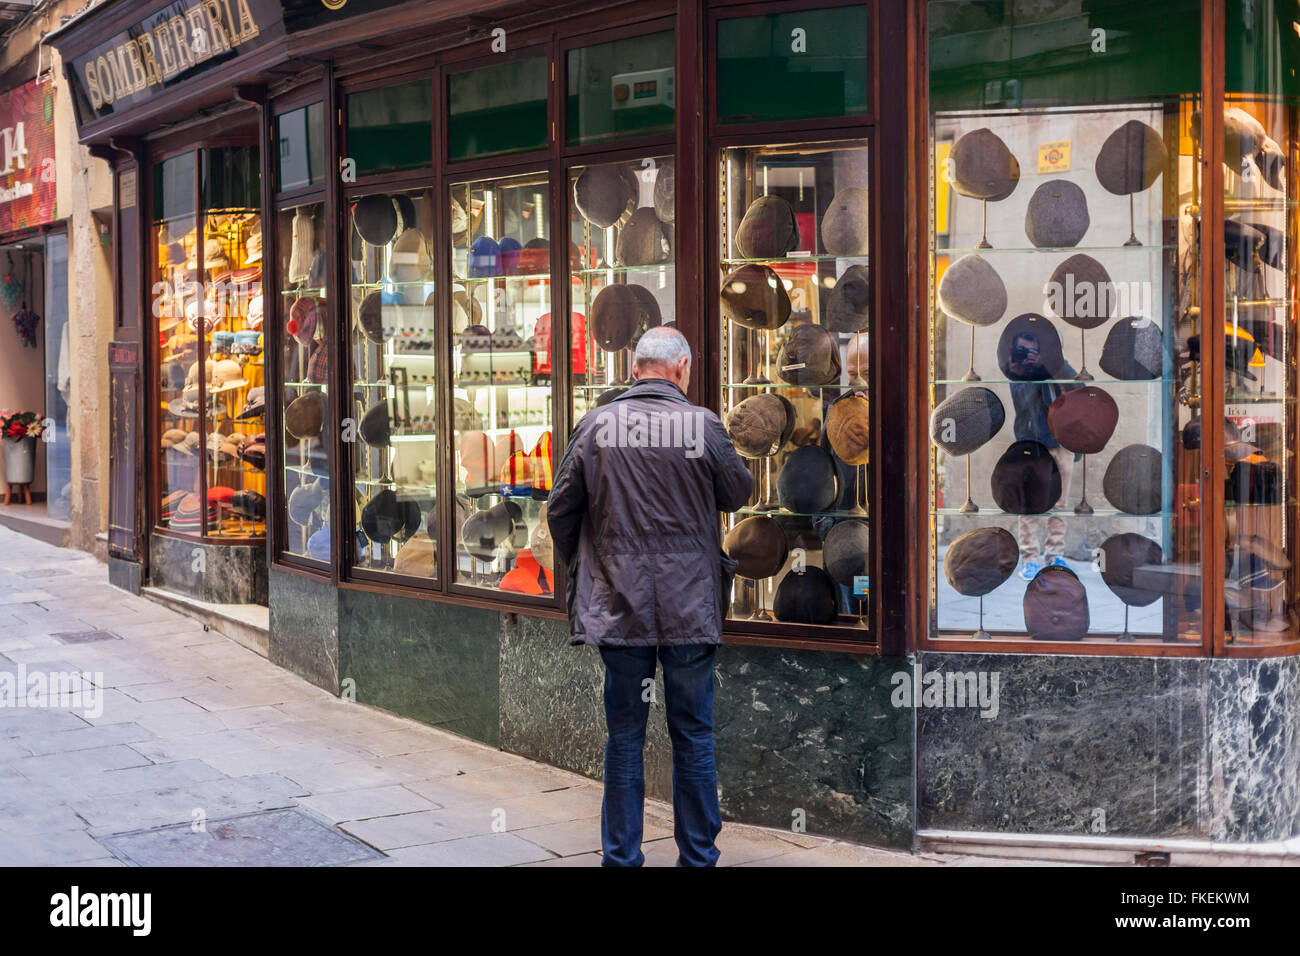 Man and hat shop, Barri Gotic, Barcelona. - Stock Image